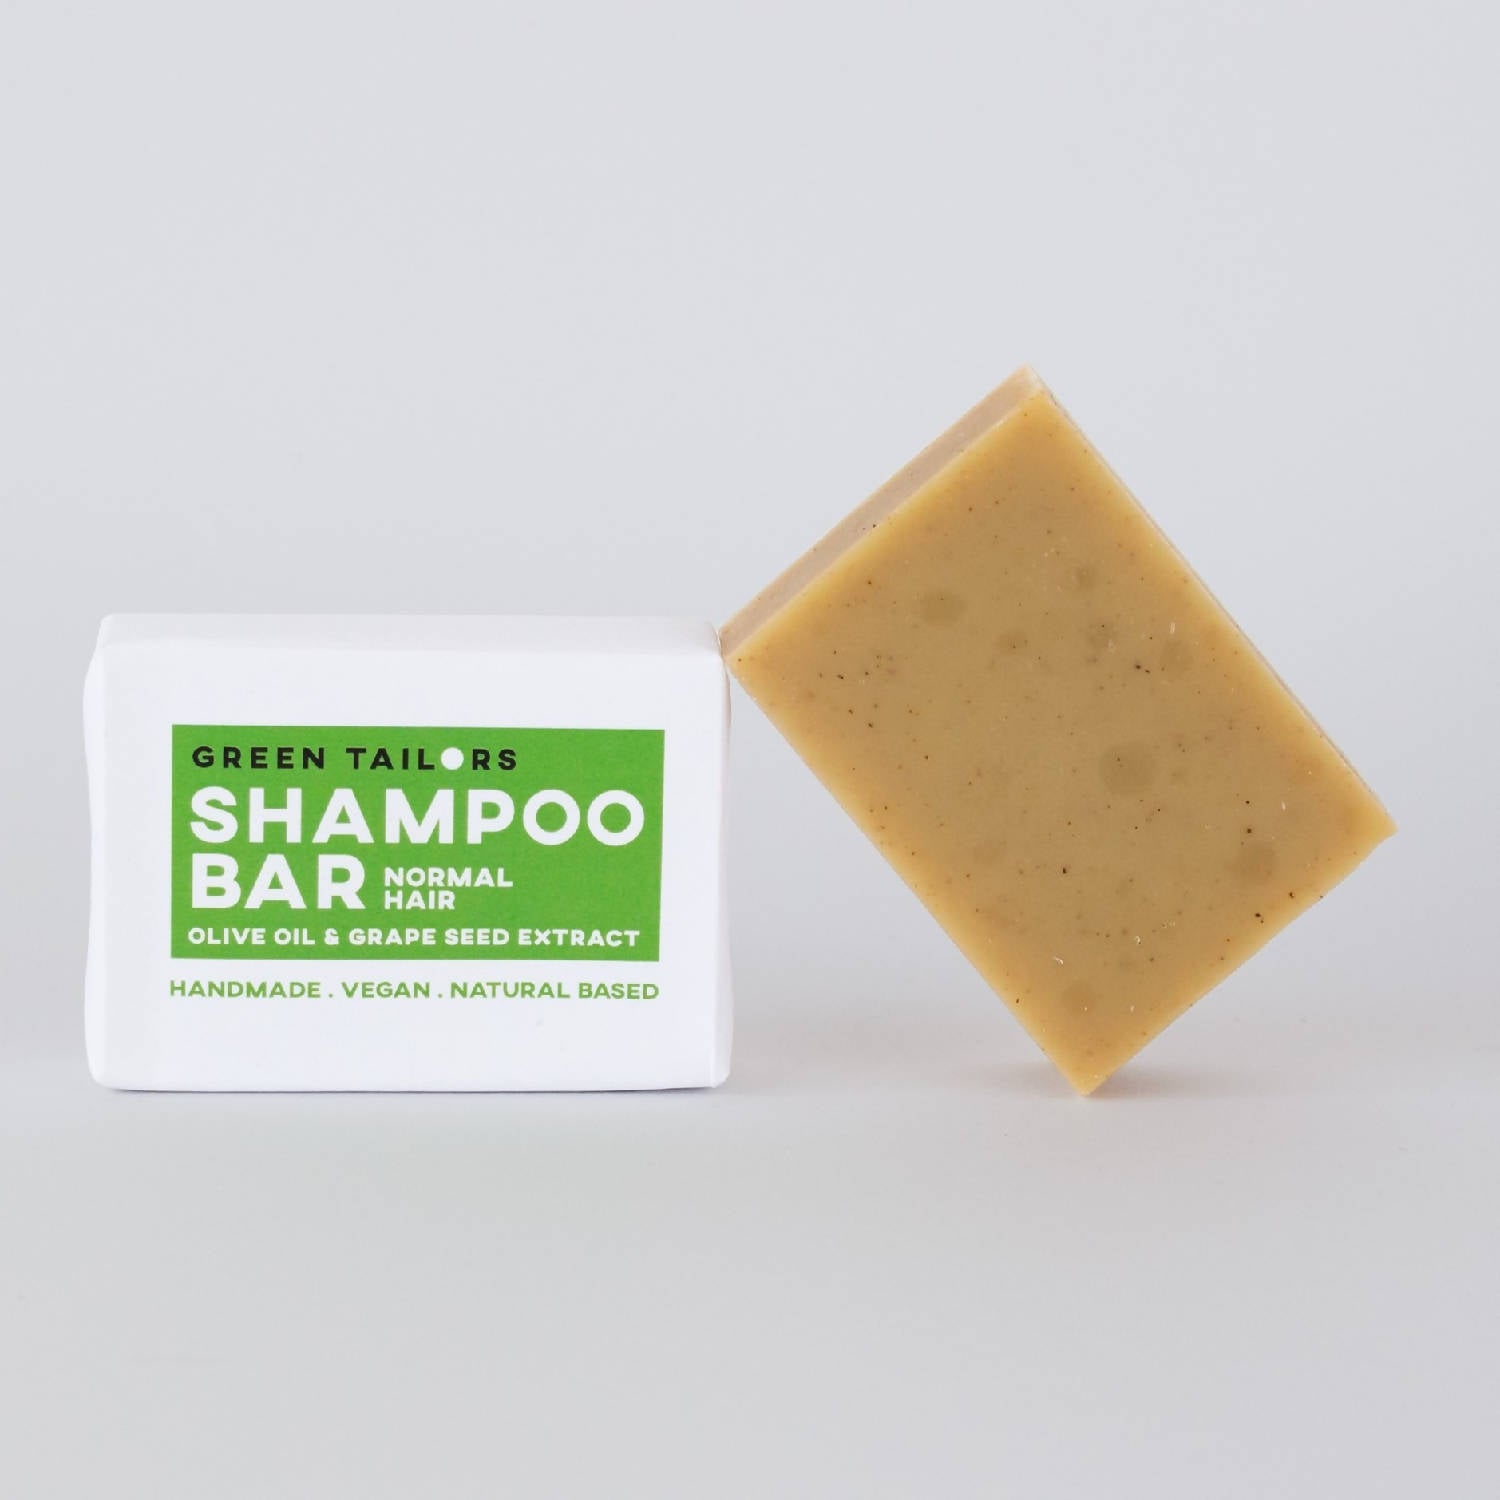 SHAMPOO BAR Normal Hair